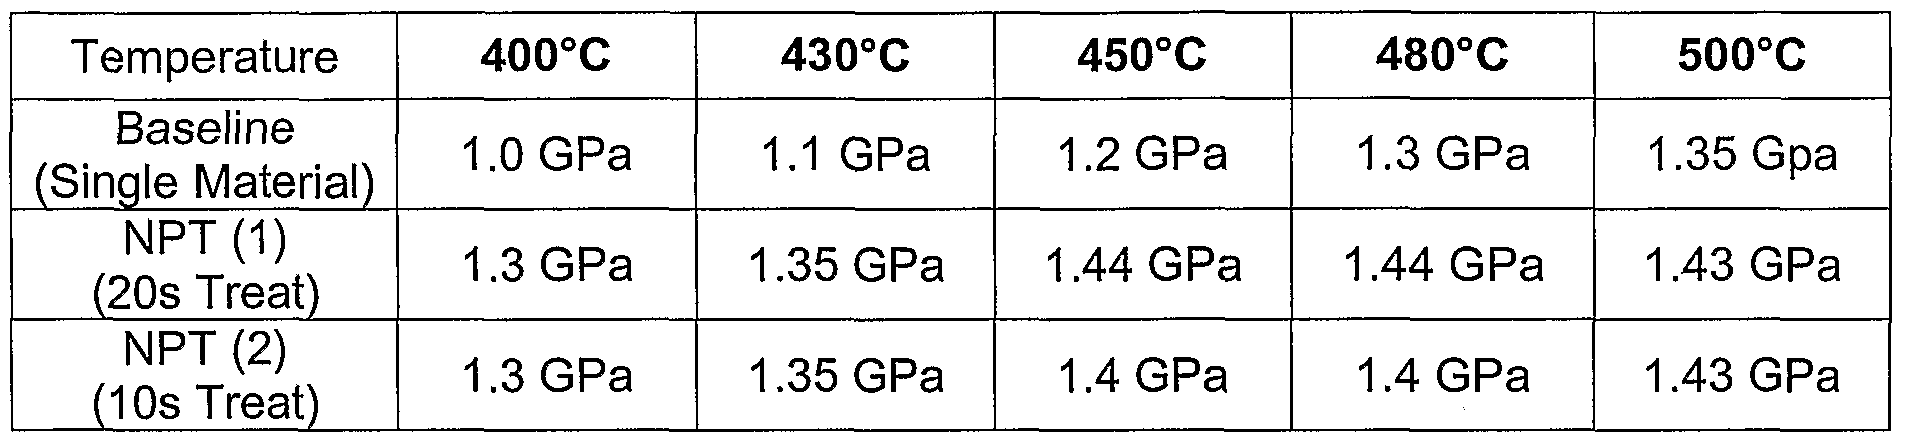 WO2006055459A2 - Tensile and compressive stressed materials for